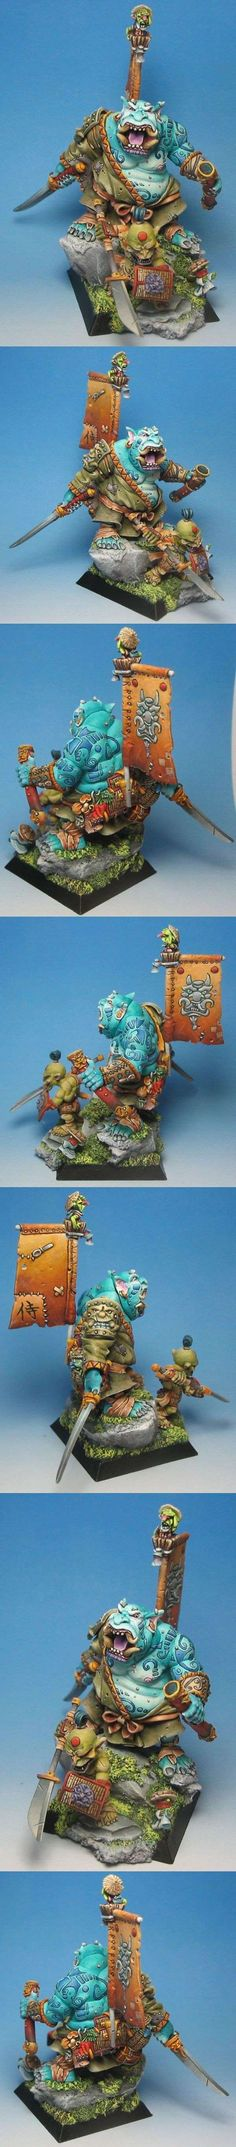 Dai-Bakemono Nr. 3: One of the neatest concepts within Rackham minis is the Japanese themed goblins. A seamless mashup of feudal japan and dark creatures!